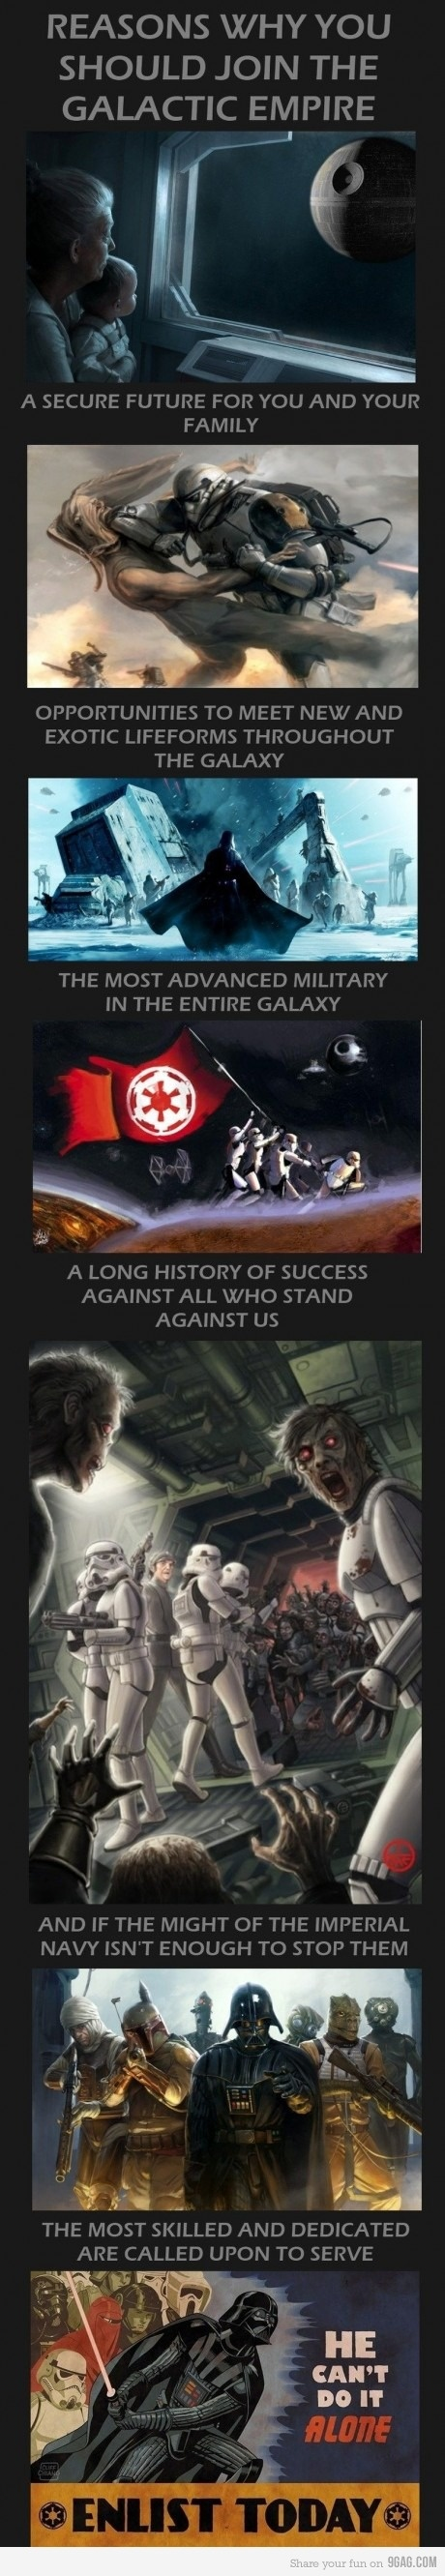 Join the Galactic Empire. Star Wars-inspired illustration. Similarity in overbearing, corrupt organisation ruling for the sake of power.